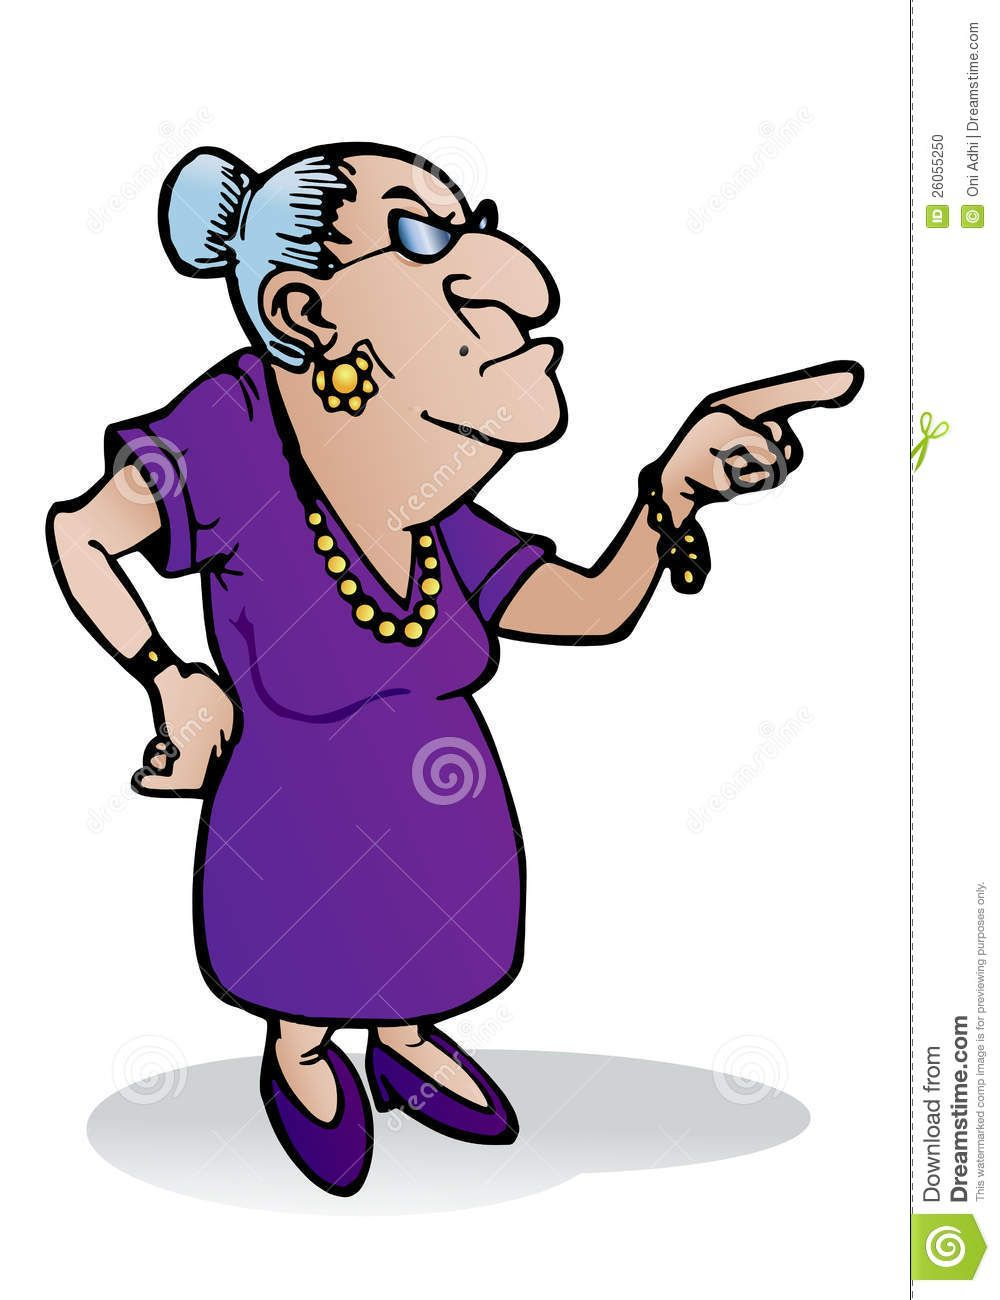 Old woman enjoying life clipart image library Great Grandmother Clip Art Clipart Panda Free Images | Cartoon ... image library